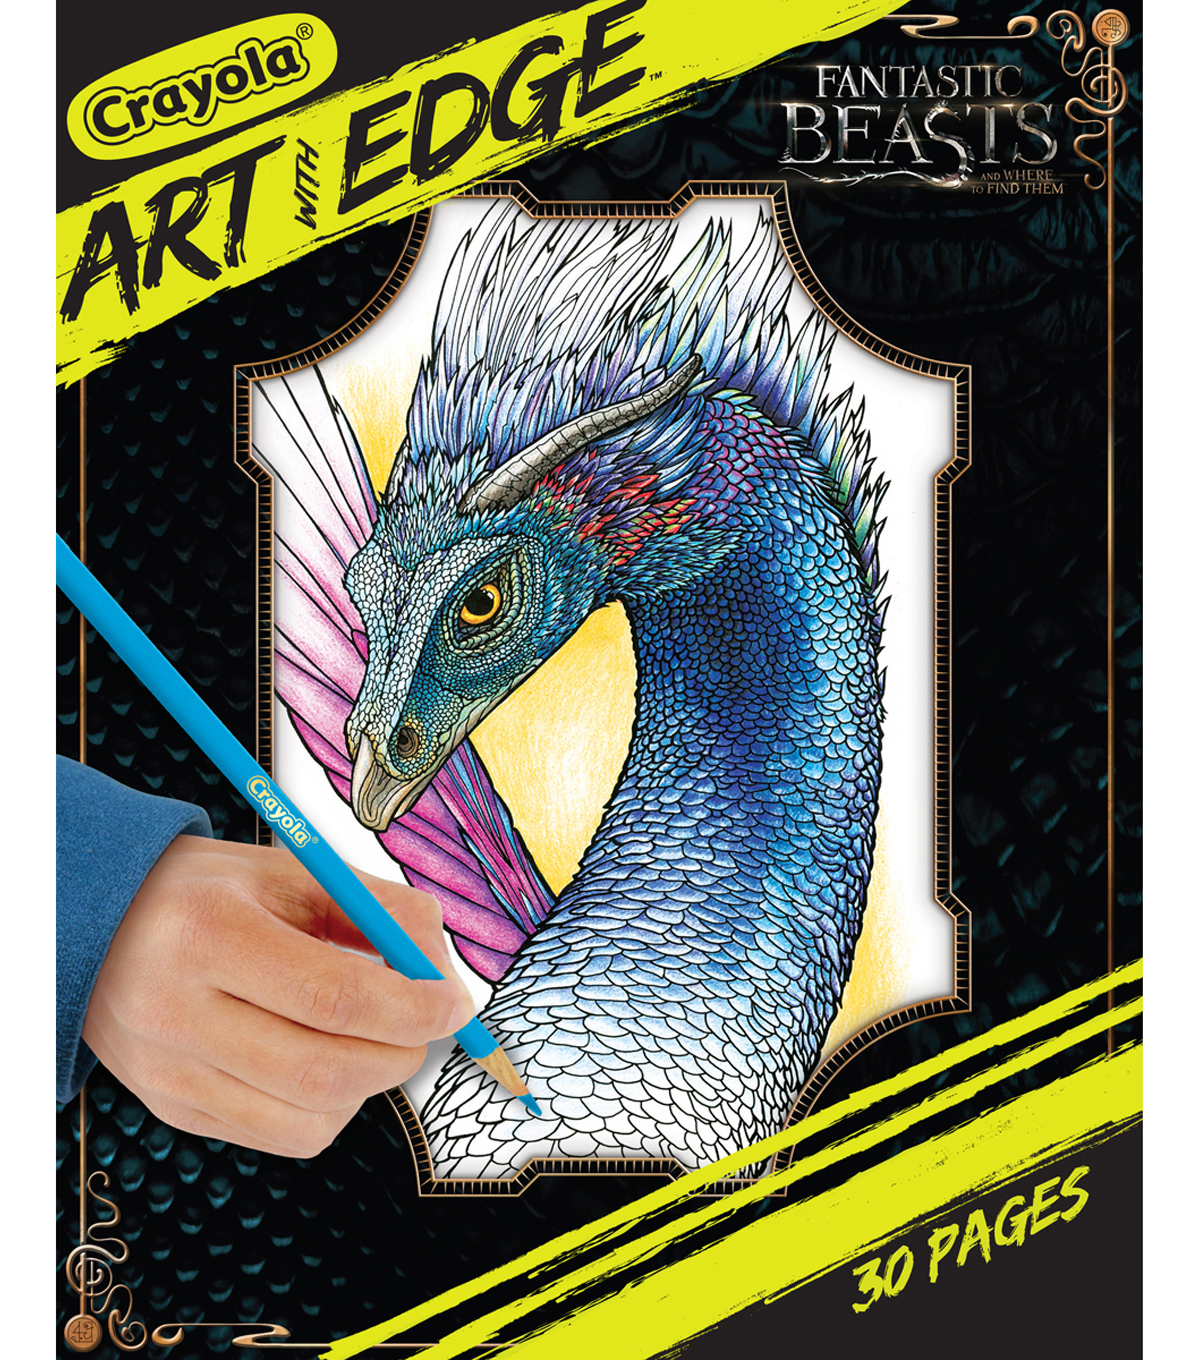 Crayola Art With Edge Coloring Pages-Fantastic Beasts | JOANN